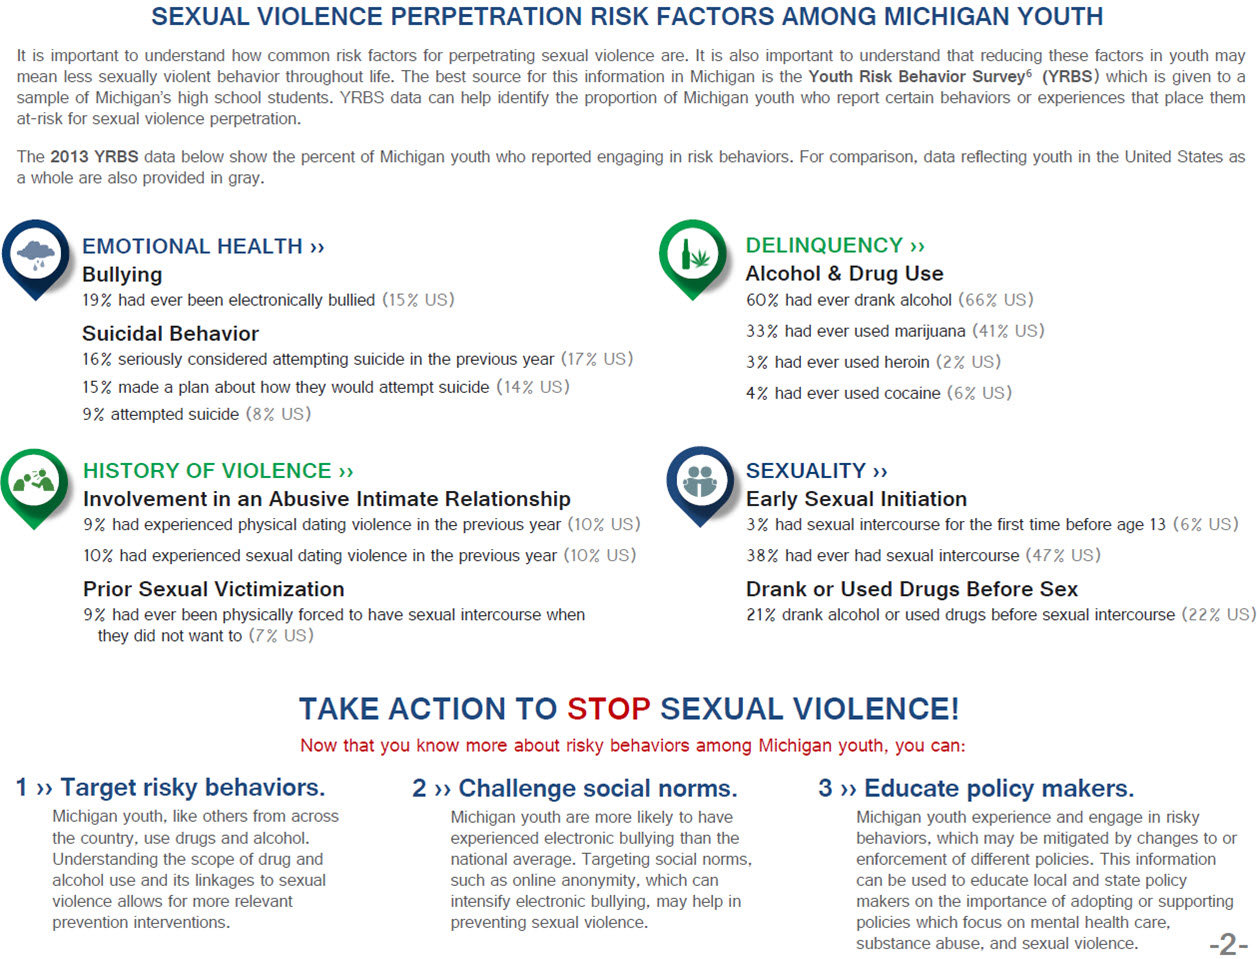 Dating Abuse Resources for Teens - The National Domestic Violence Hotline